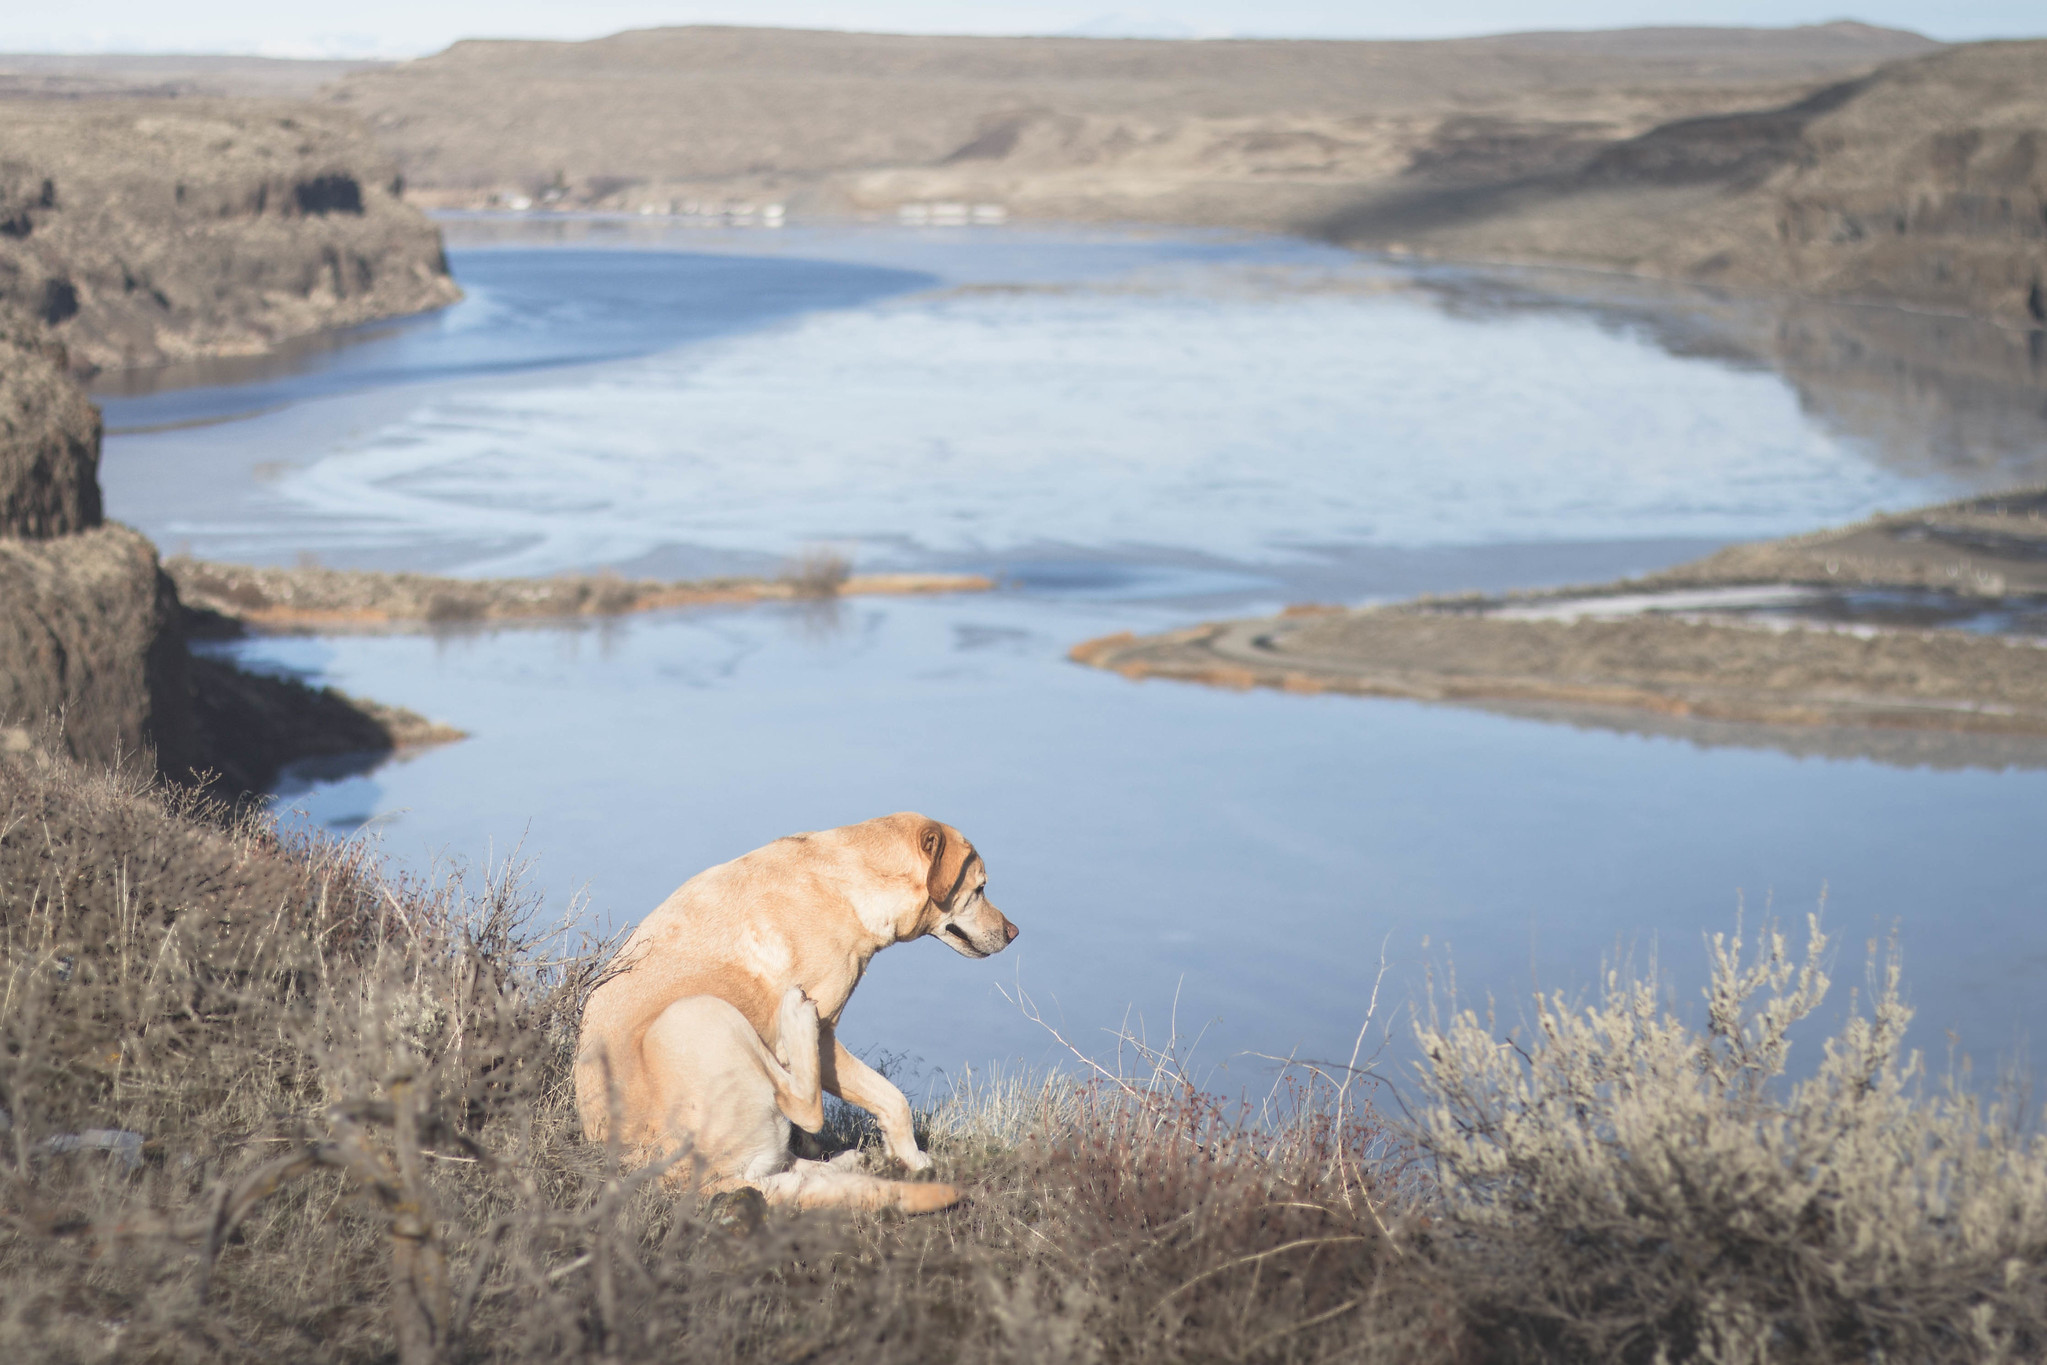 Desert dogs in Moses Coulee Preserve